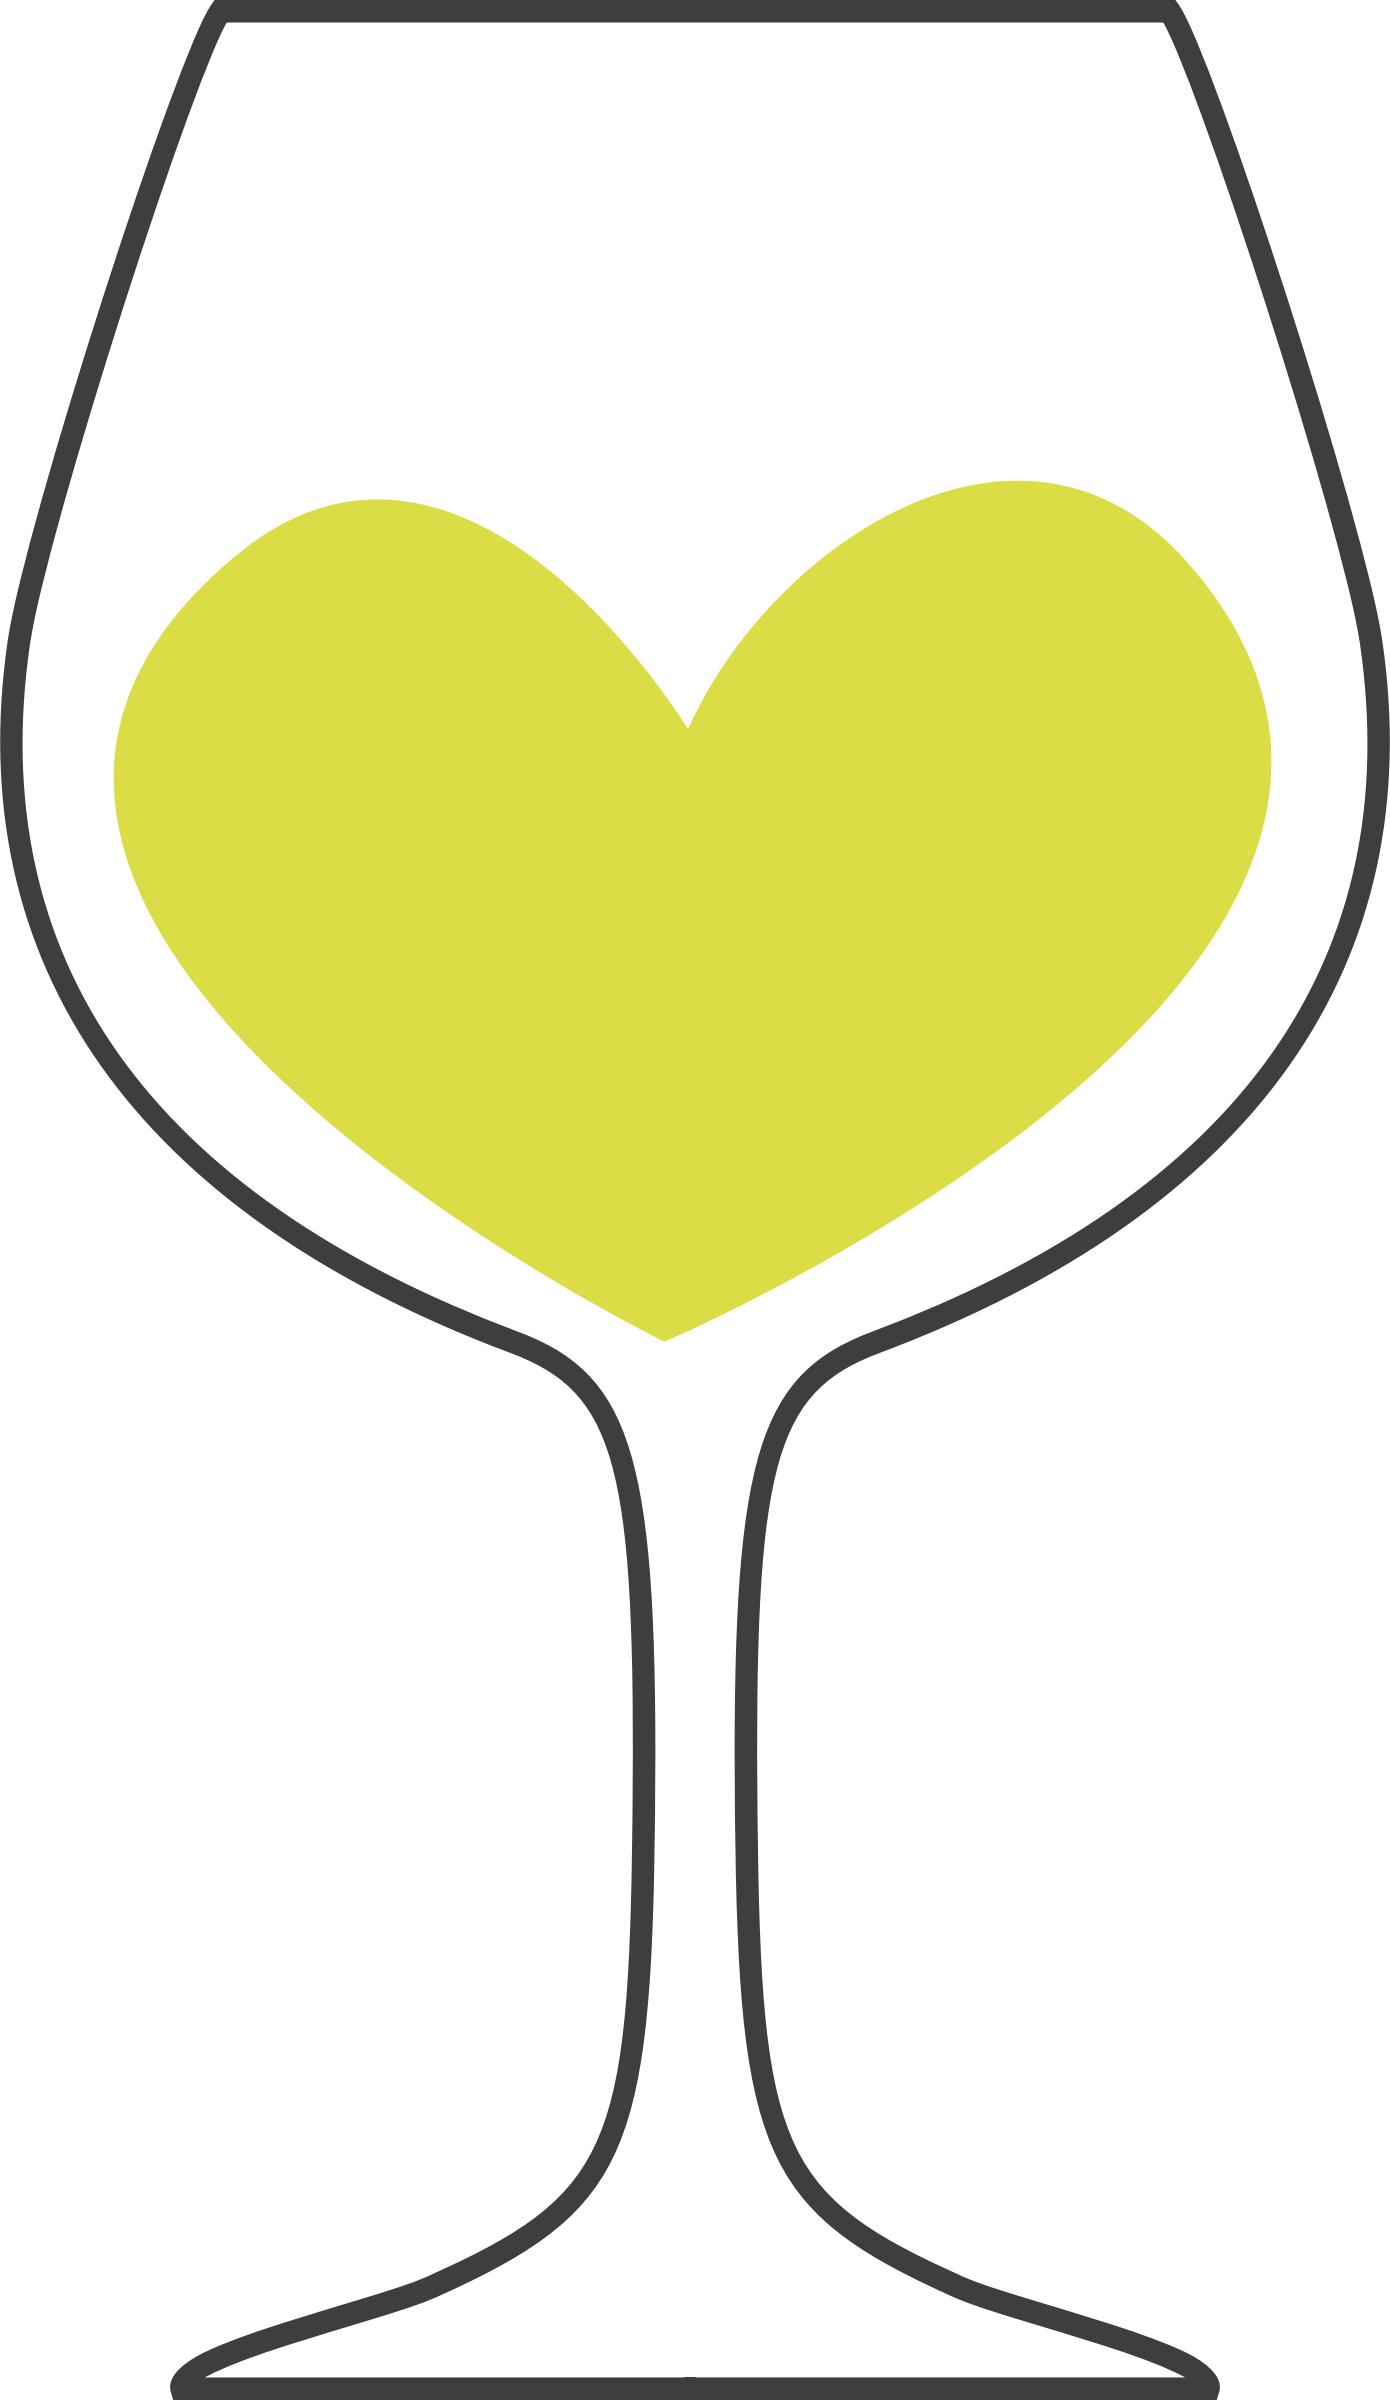 Love of white wine by Firkin